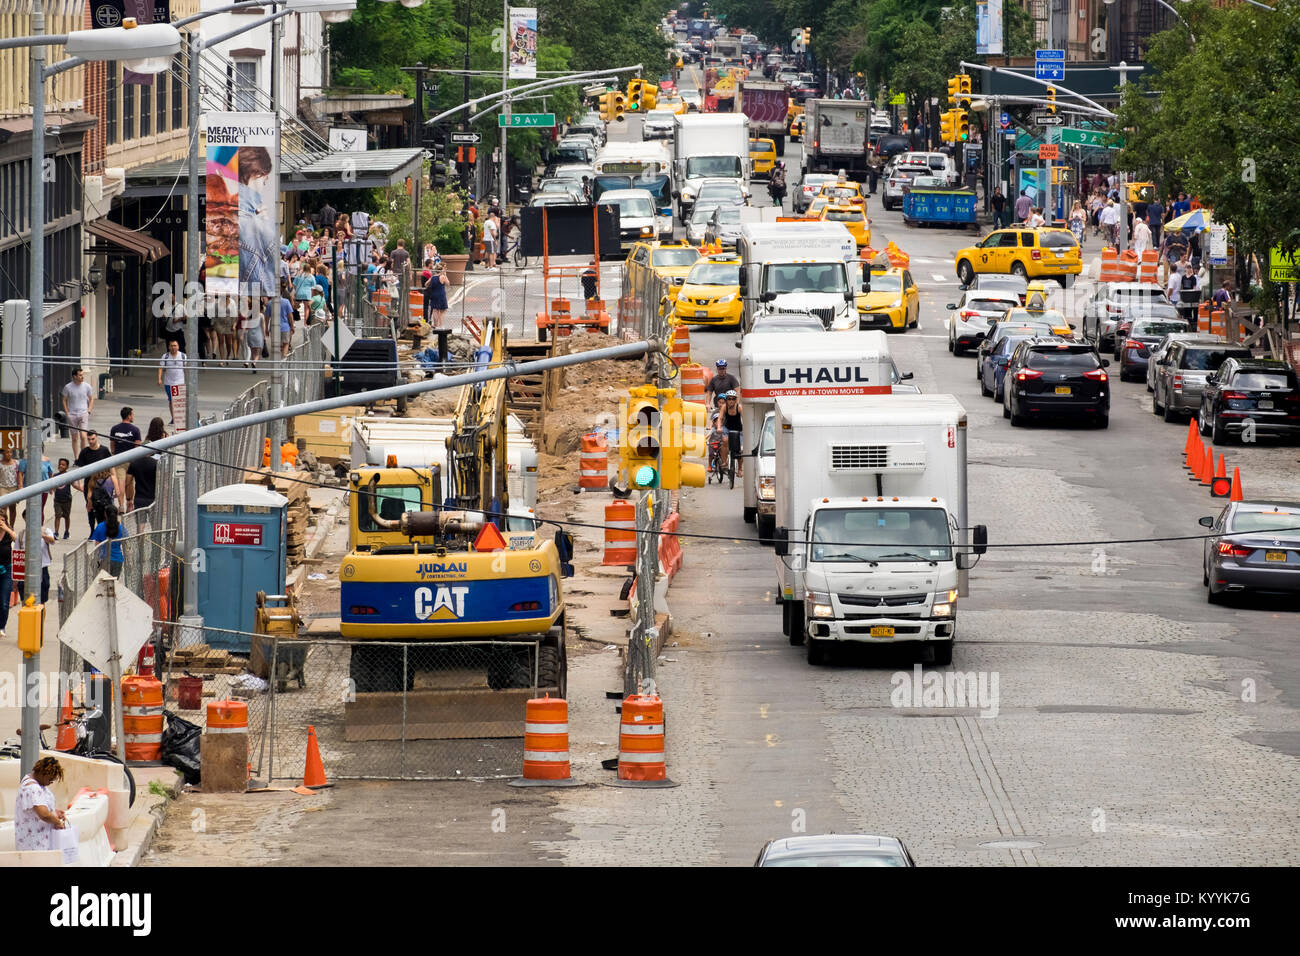 ?traffic congestion in new york city essay Busy city centre essay new york city schools started converting many of its massive high schools into smaller, thematic schools in 2002  the problems of traffic .